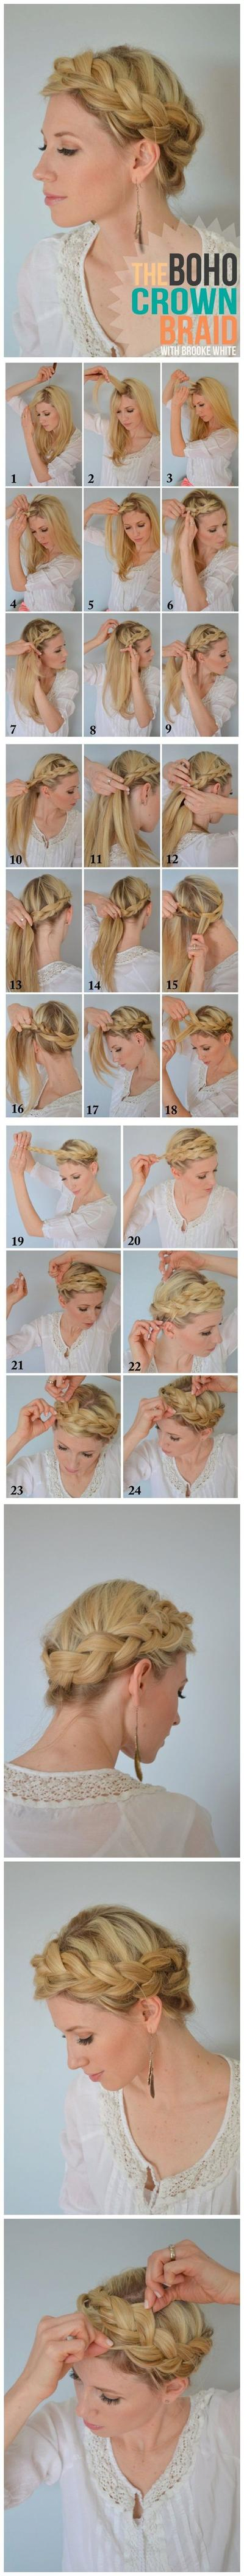 Boho Crown Braided Style